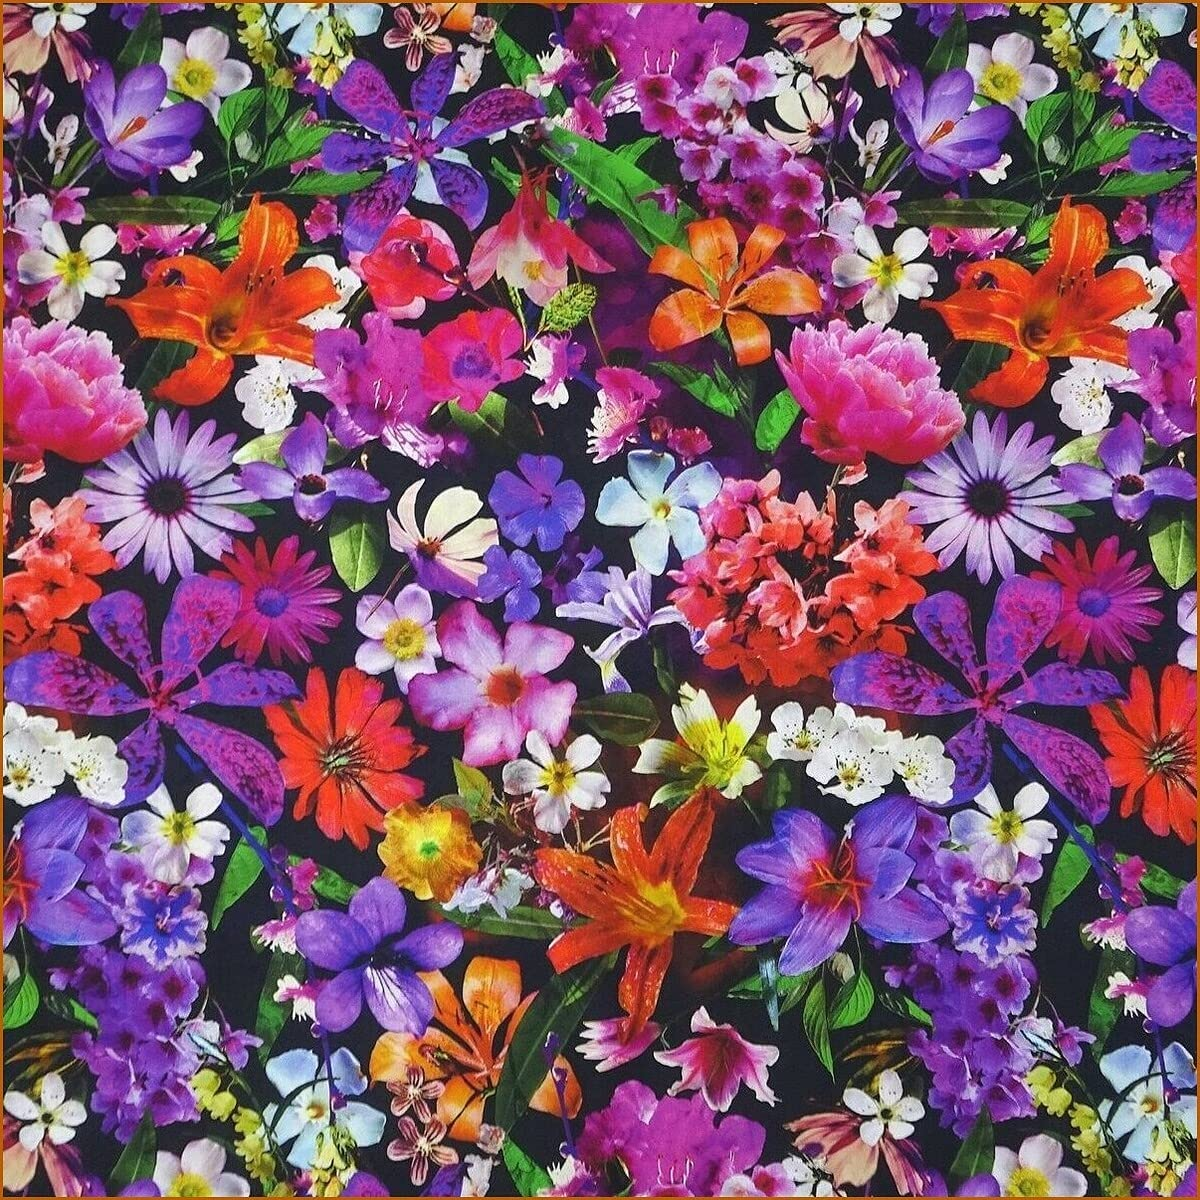 Alina New products world's highest quality popular Natetkova - Floral Fabric Packe Tropical Digital Cheap Flowers